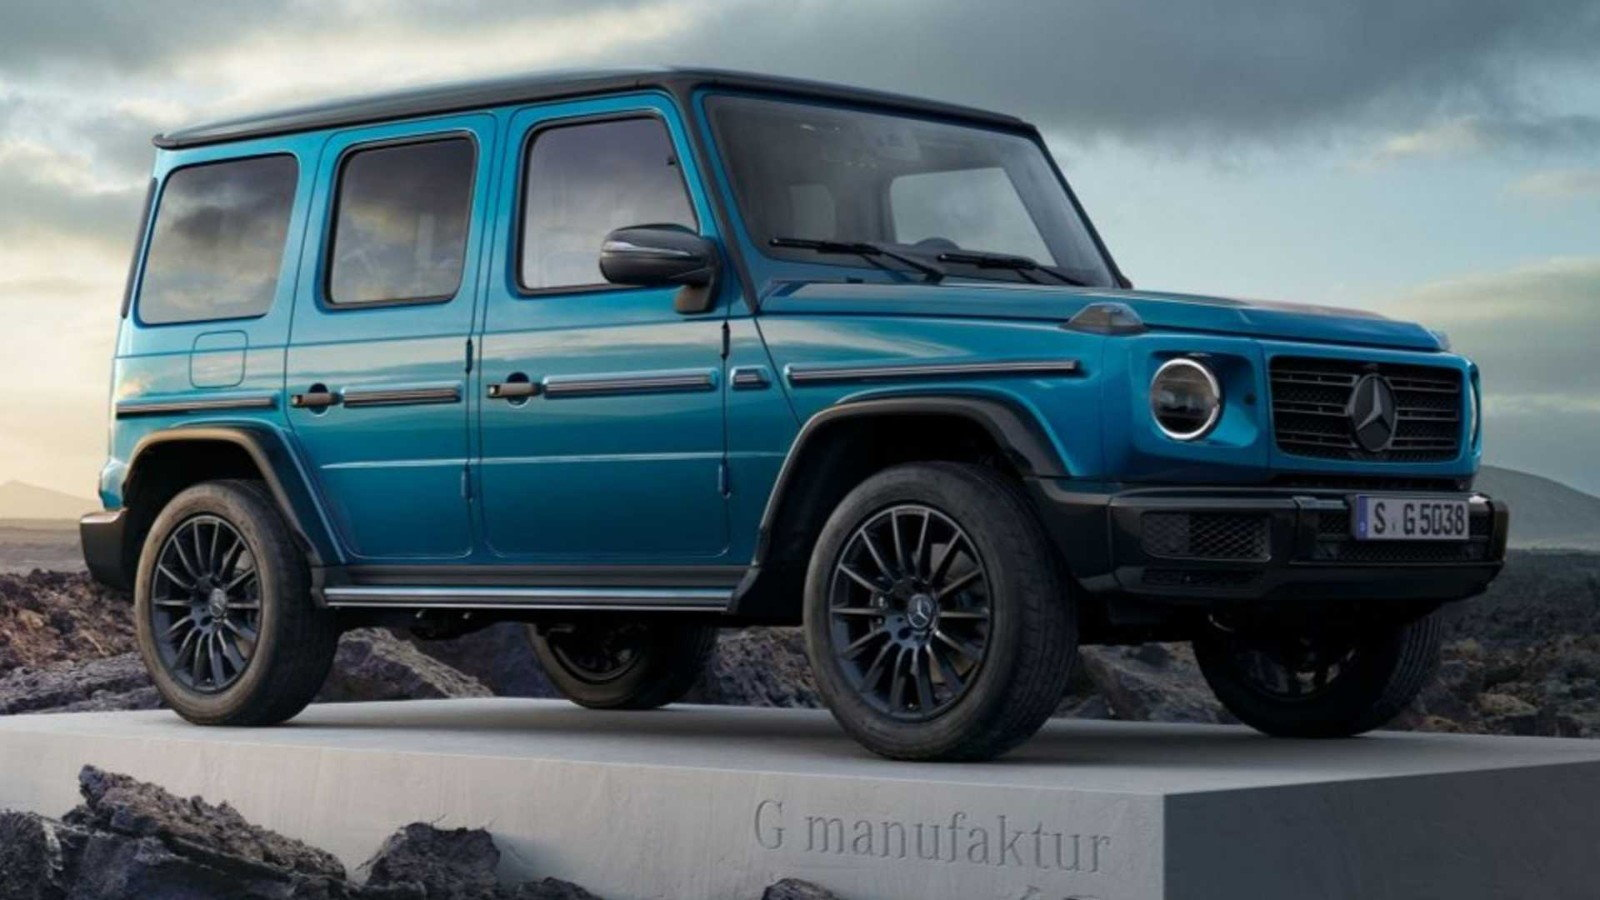 Mercedes Offering Greater Customization with G-Class Builds